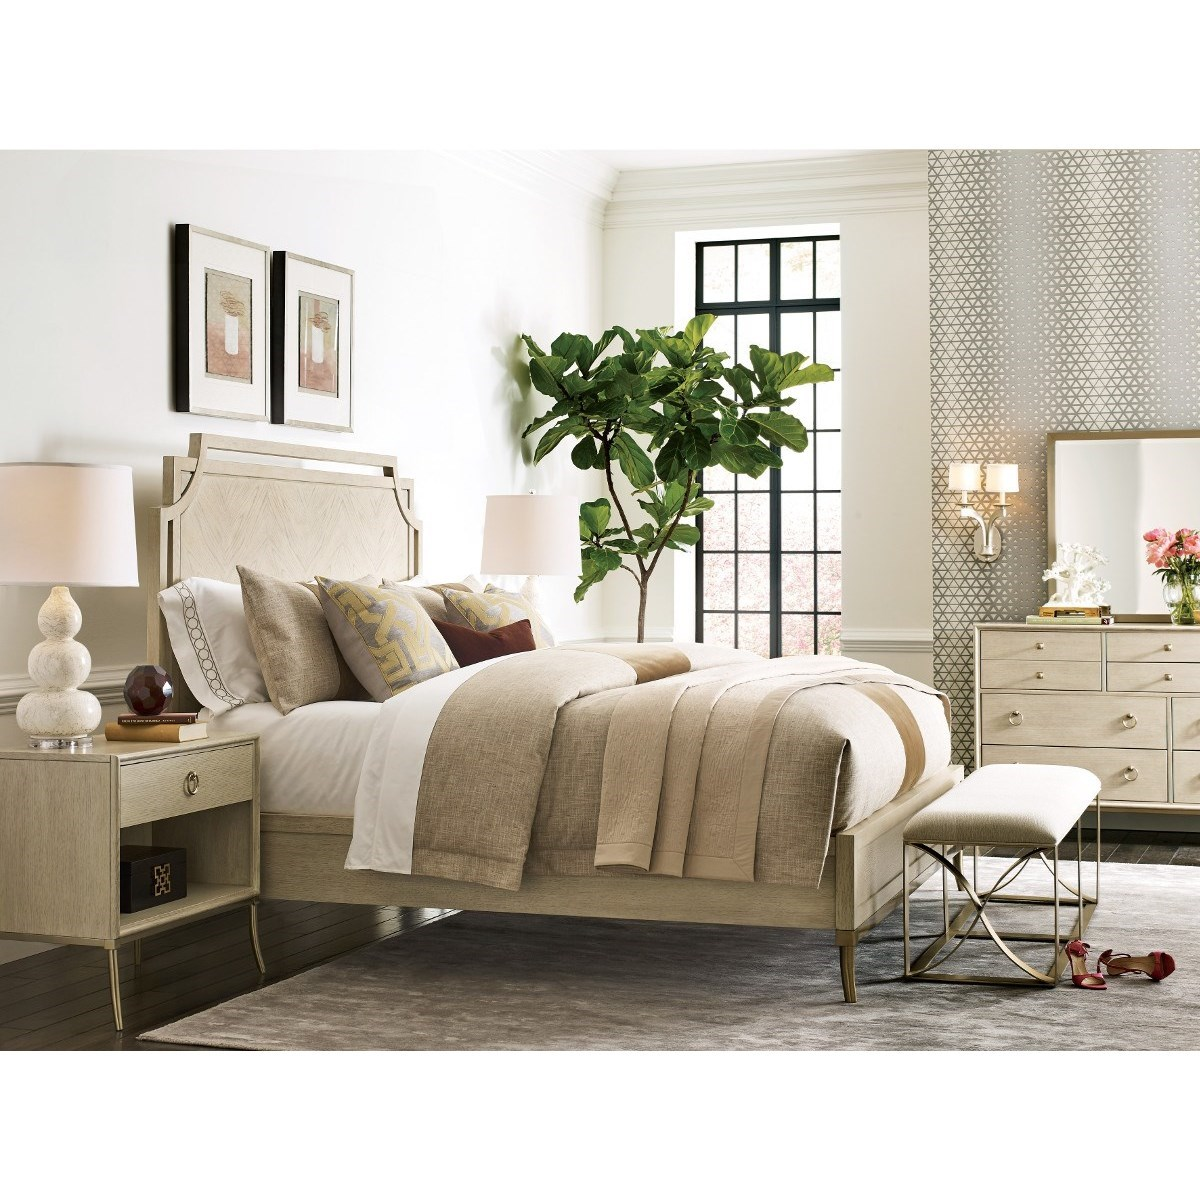 Lenox Queen Bedroom Group by American Drew at Stoney Creek Furniture